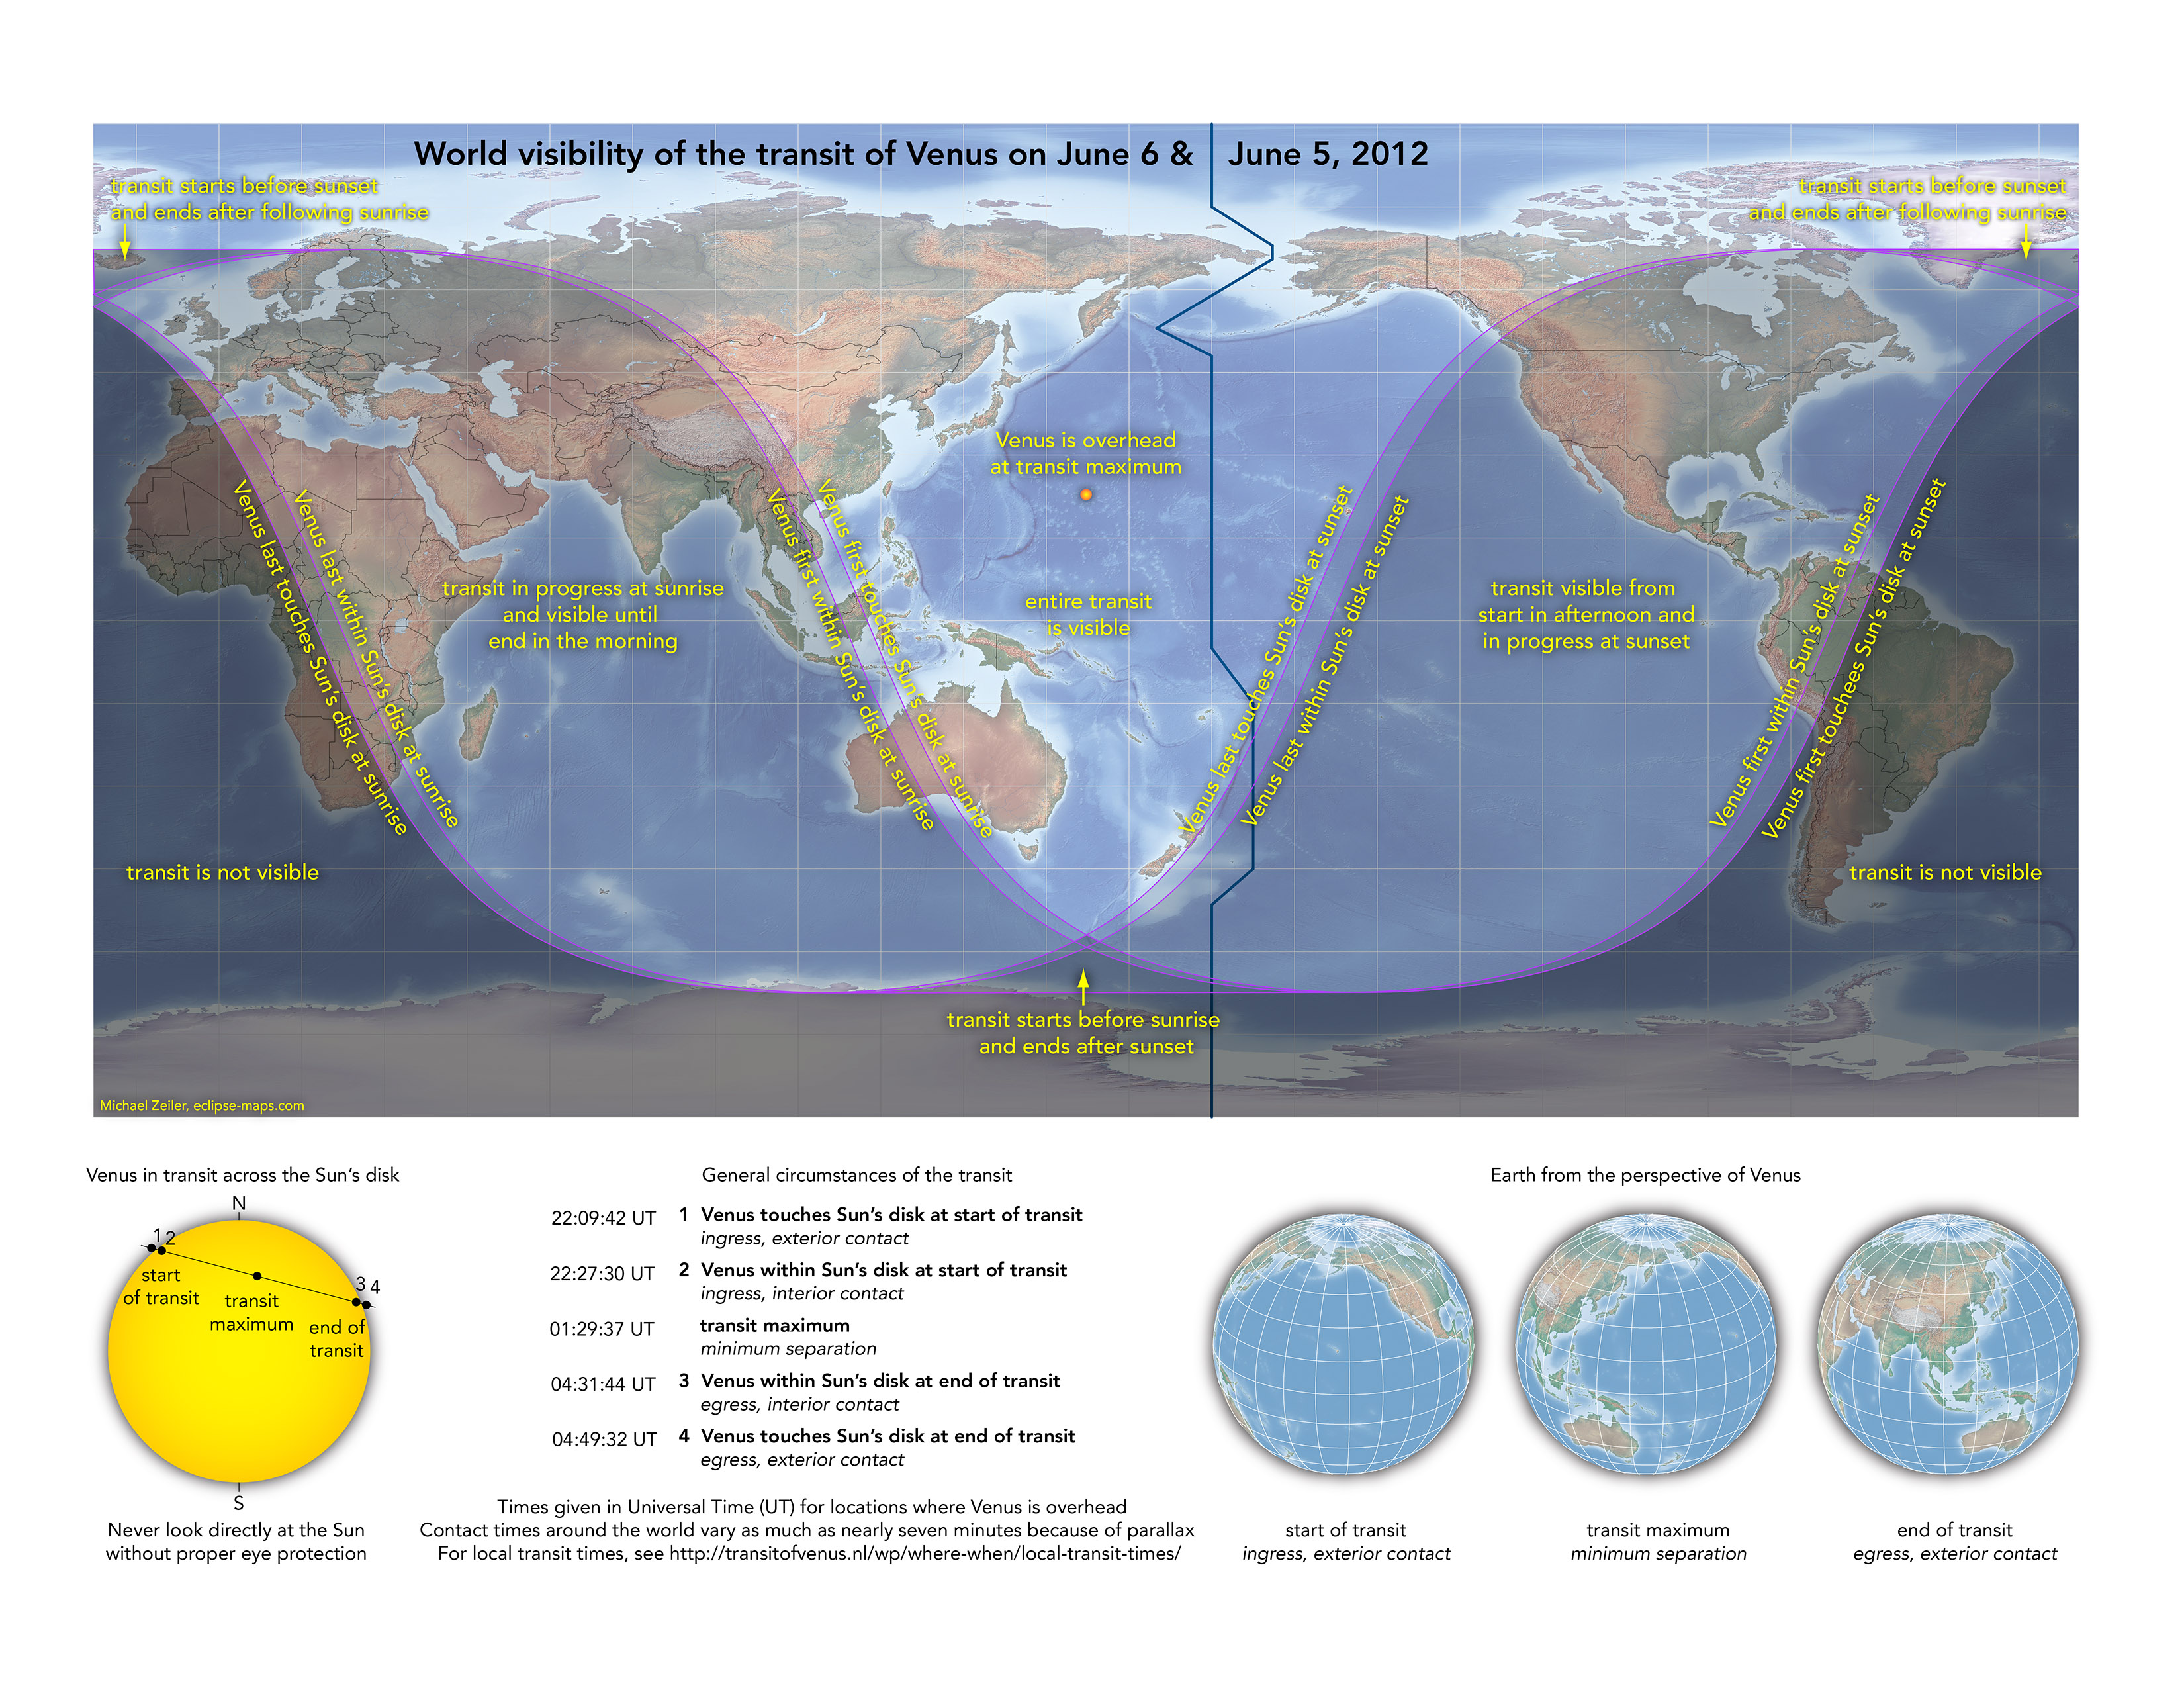 http://eclipse-maps.com/Eclipse-Maps/Transits_files/ToV2012map_1.jpg